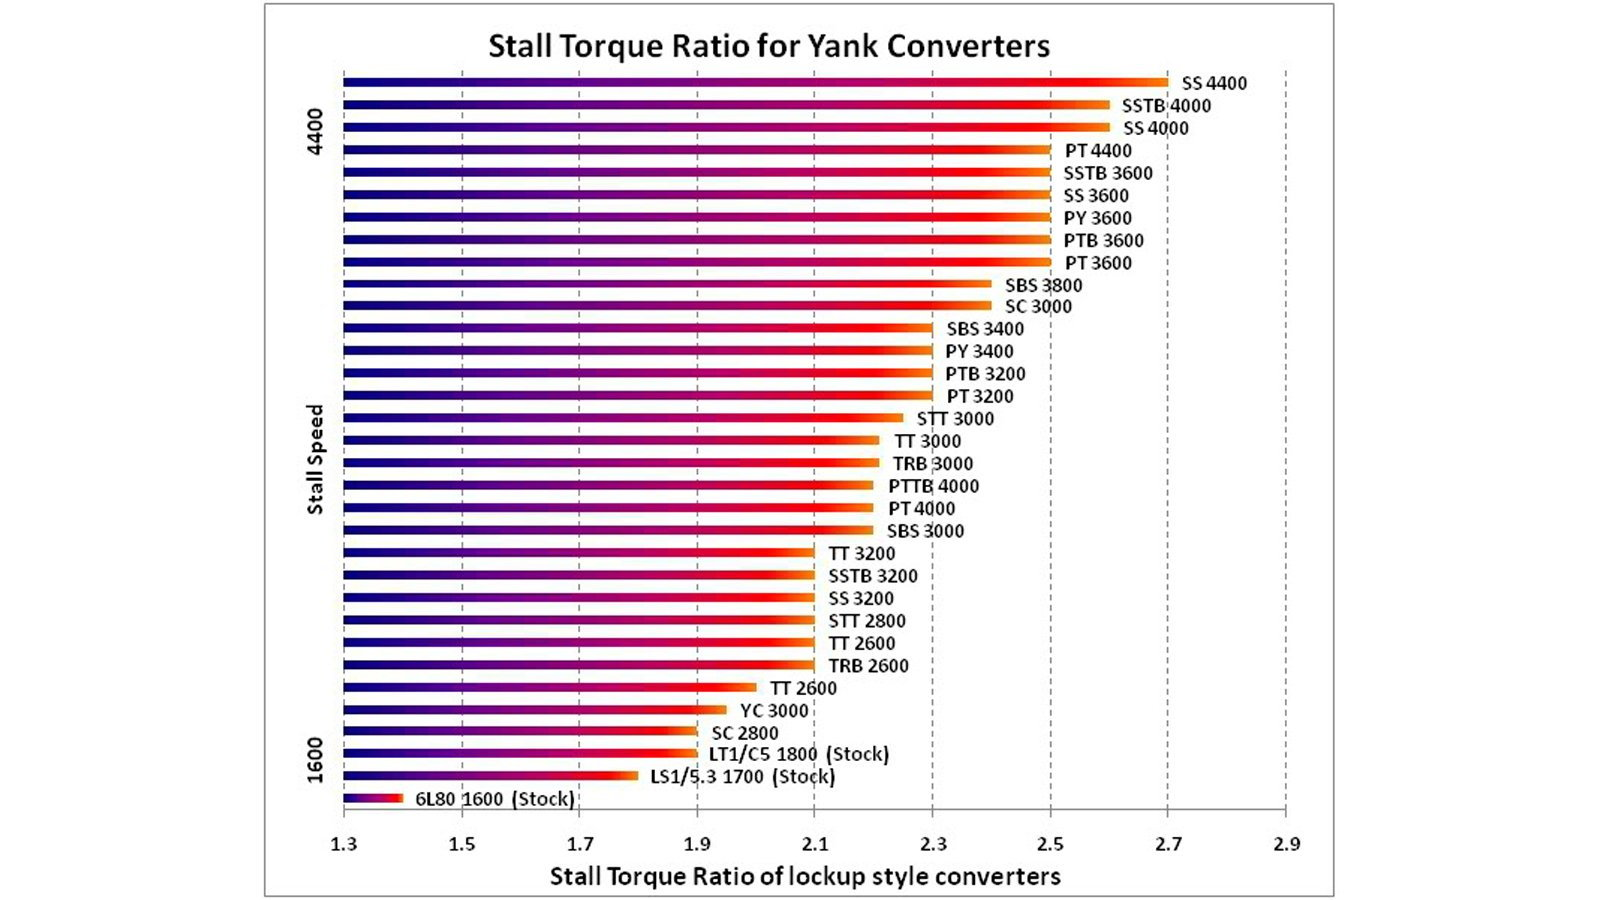 stall torque ratio for yank converters